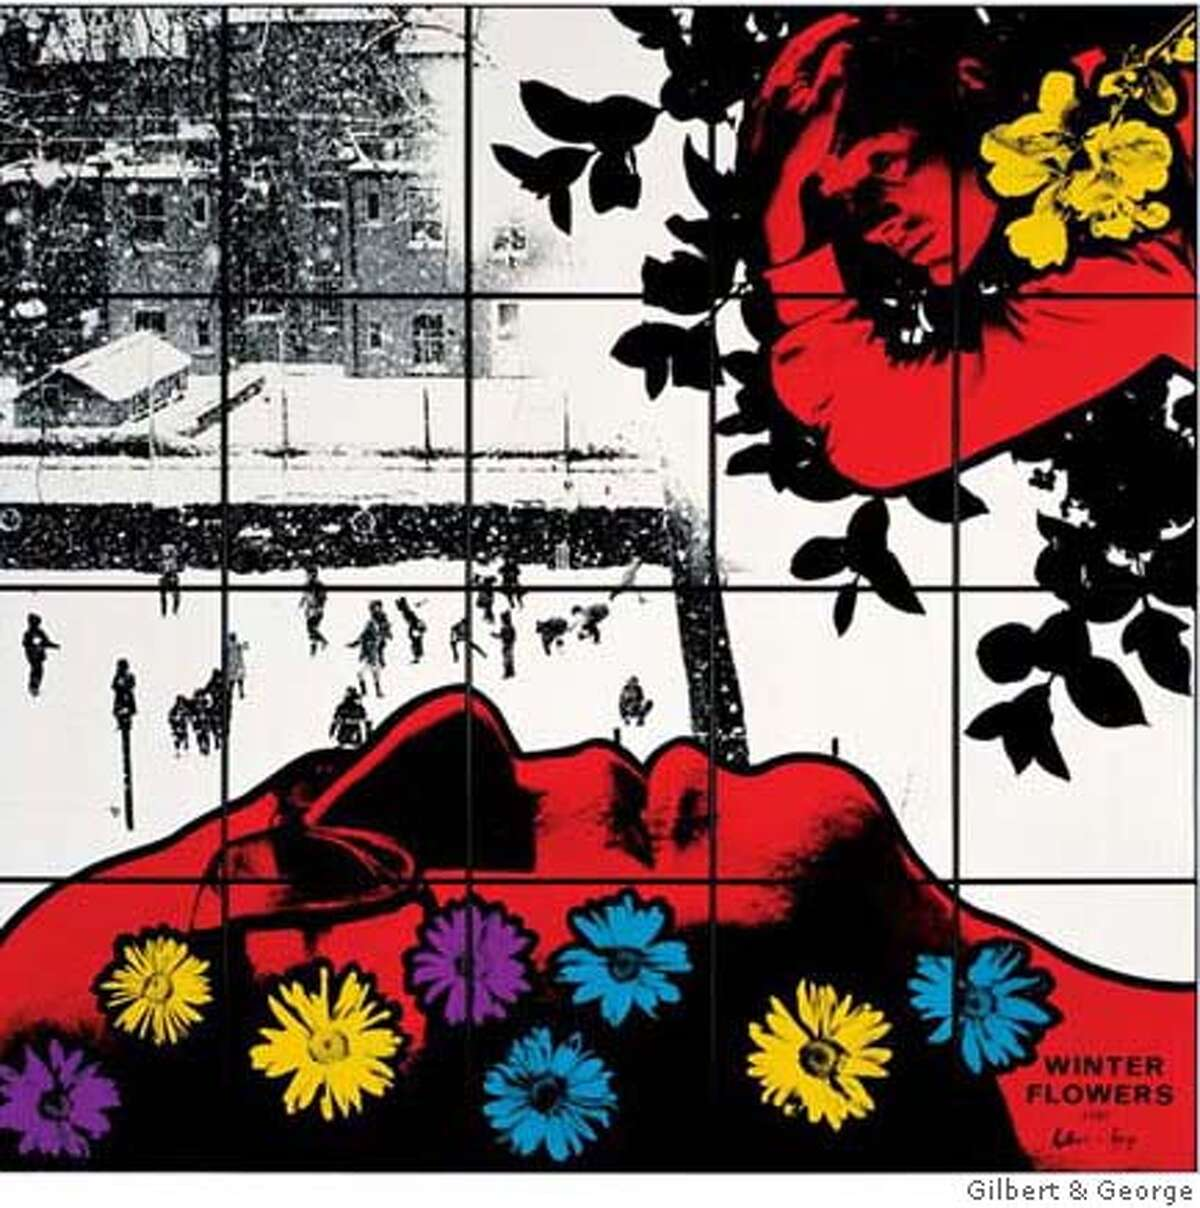 Gilbert & George, Winter Flowers, 1982. The Carol and Arthur Goldberg Collection. � Gilbert & George